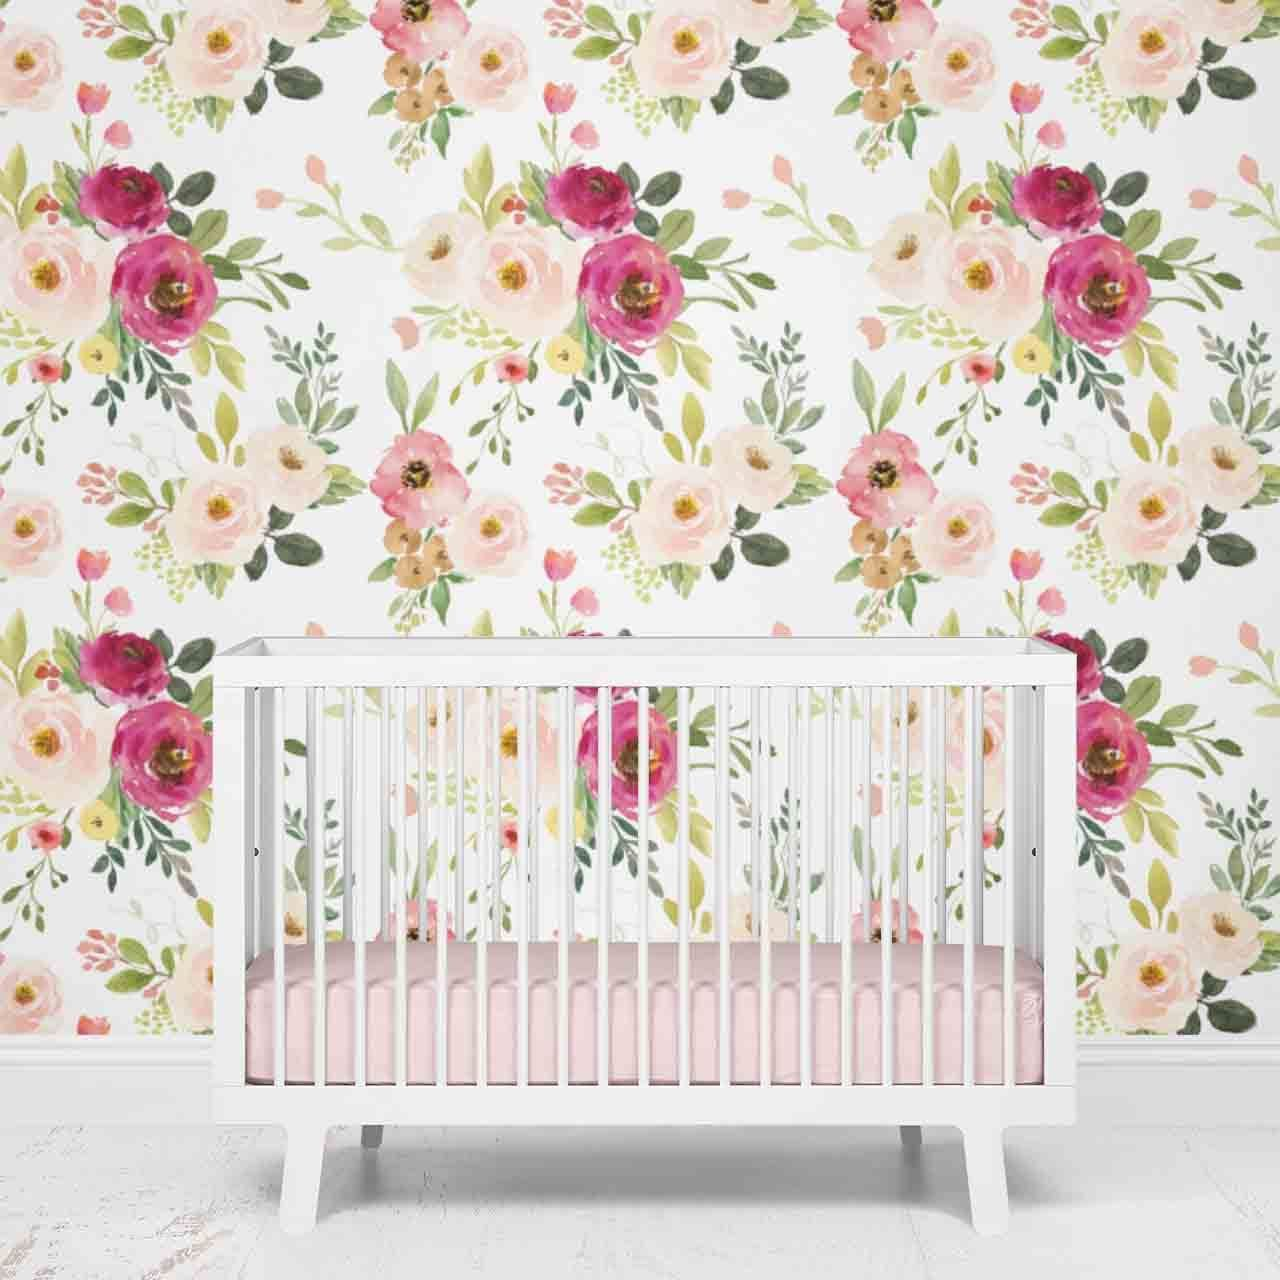 Franny s farmhouse floral removable wallpaper Artofit 1280x1280